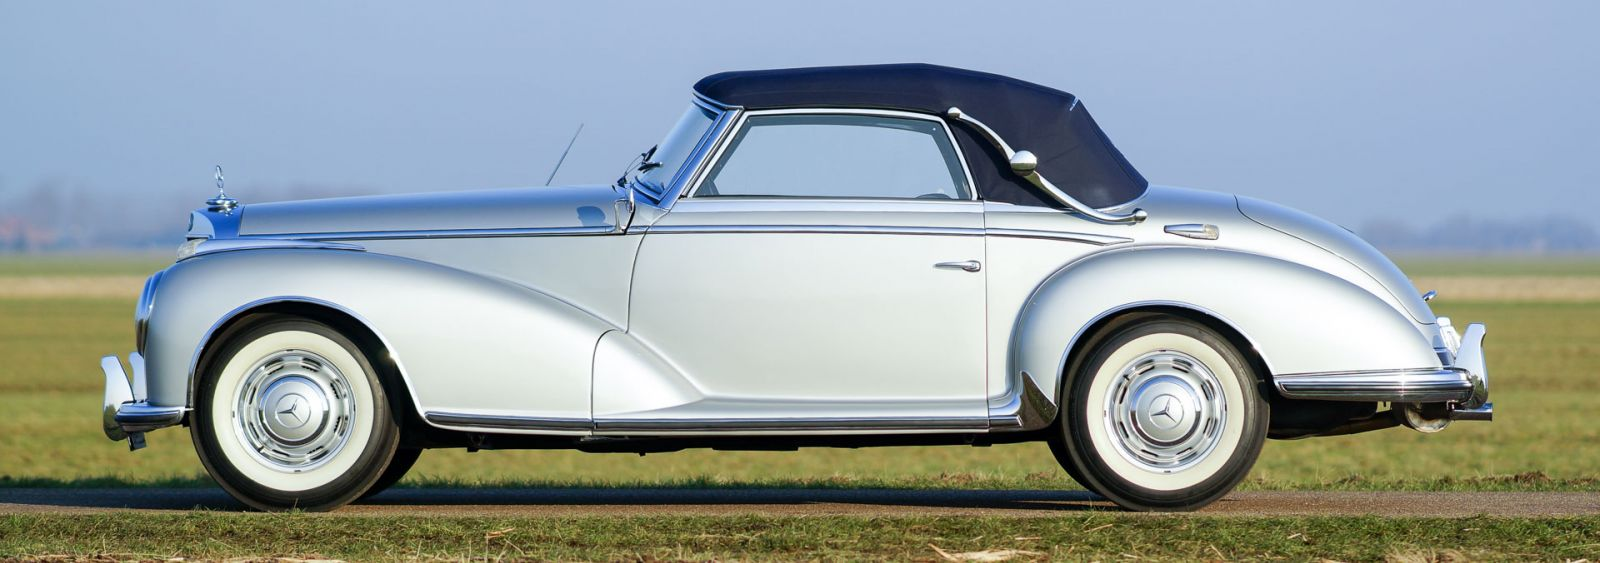 Mercedes-Benz 300 S cabriolet, 1953 - Welcome to